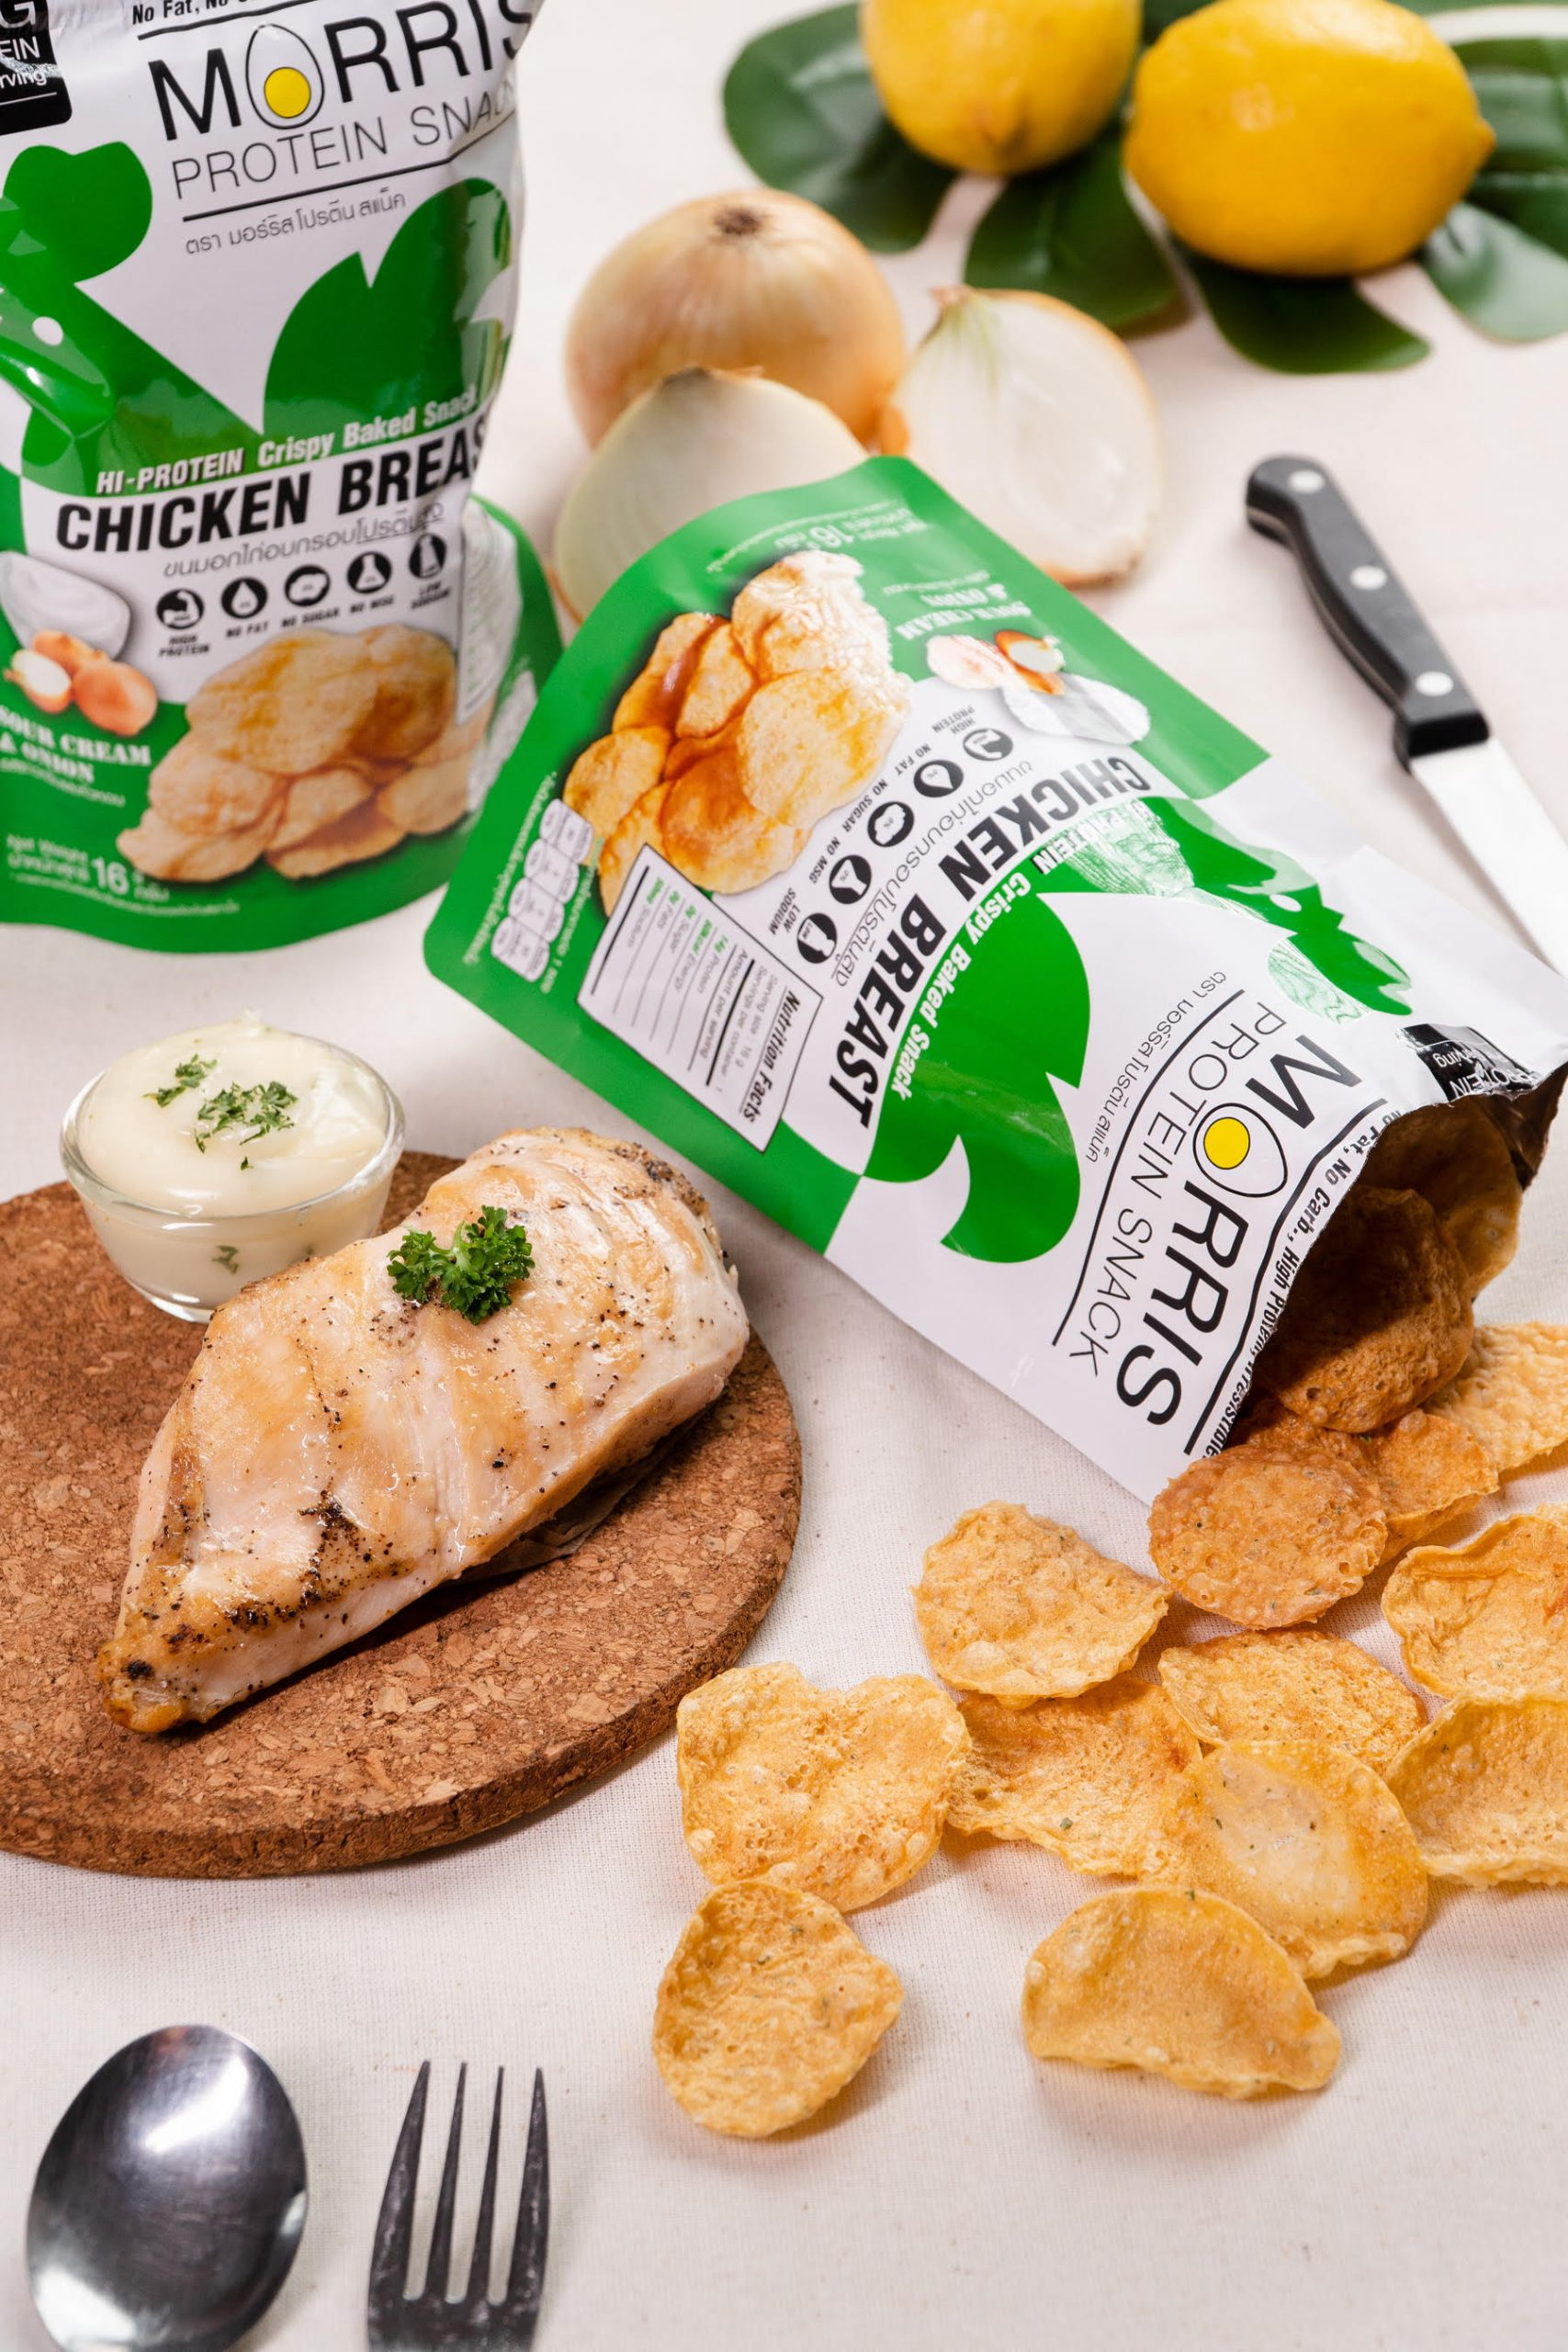 Morris Crispy Chicken Breast - Sour cream and onion 16g